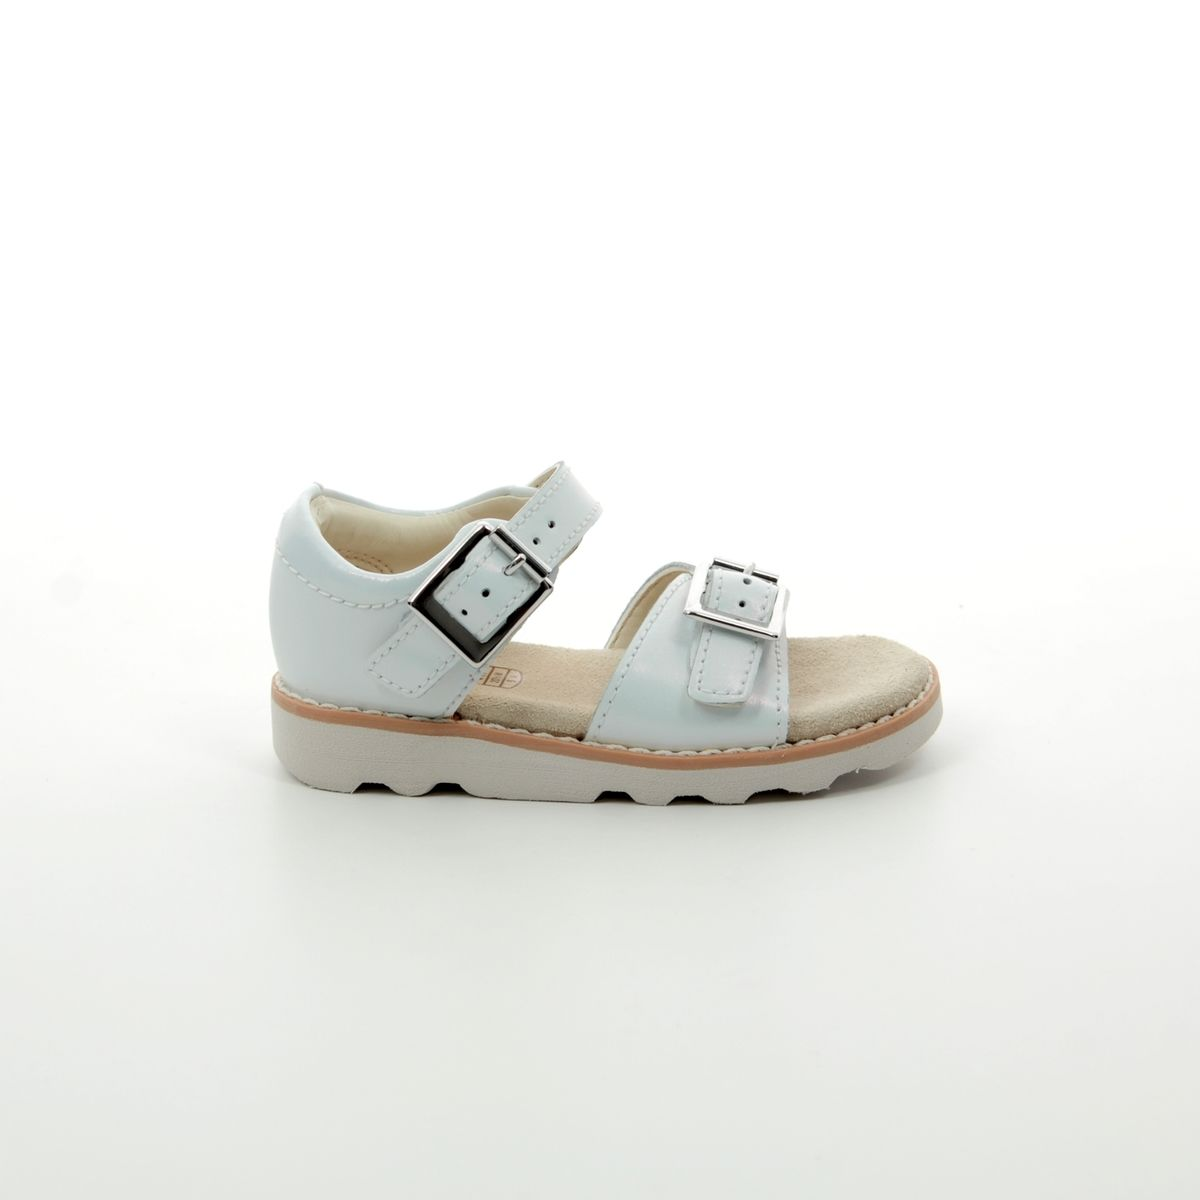 042c7a8124a Clarks Sandals - Silver - 411226F CROWN BLOOM T